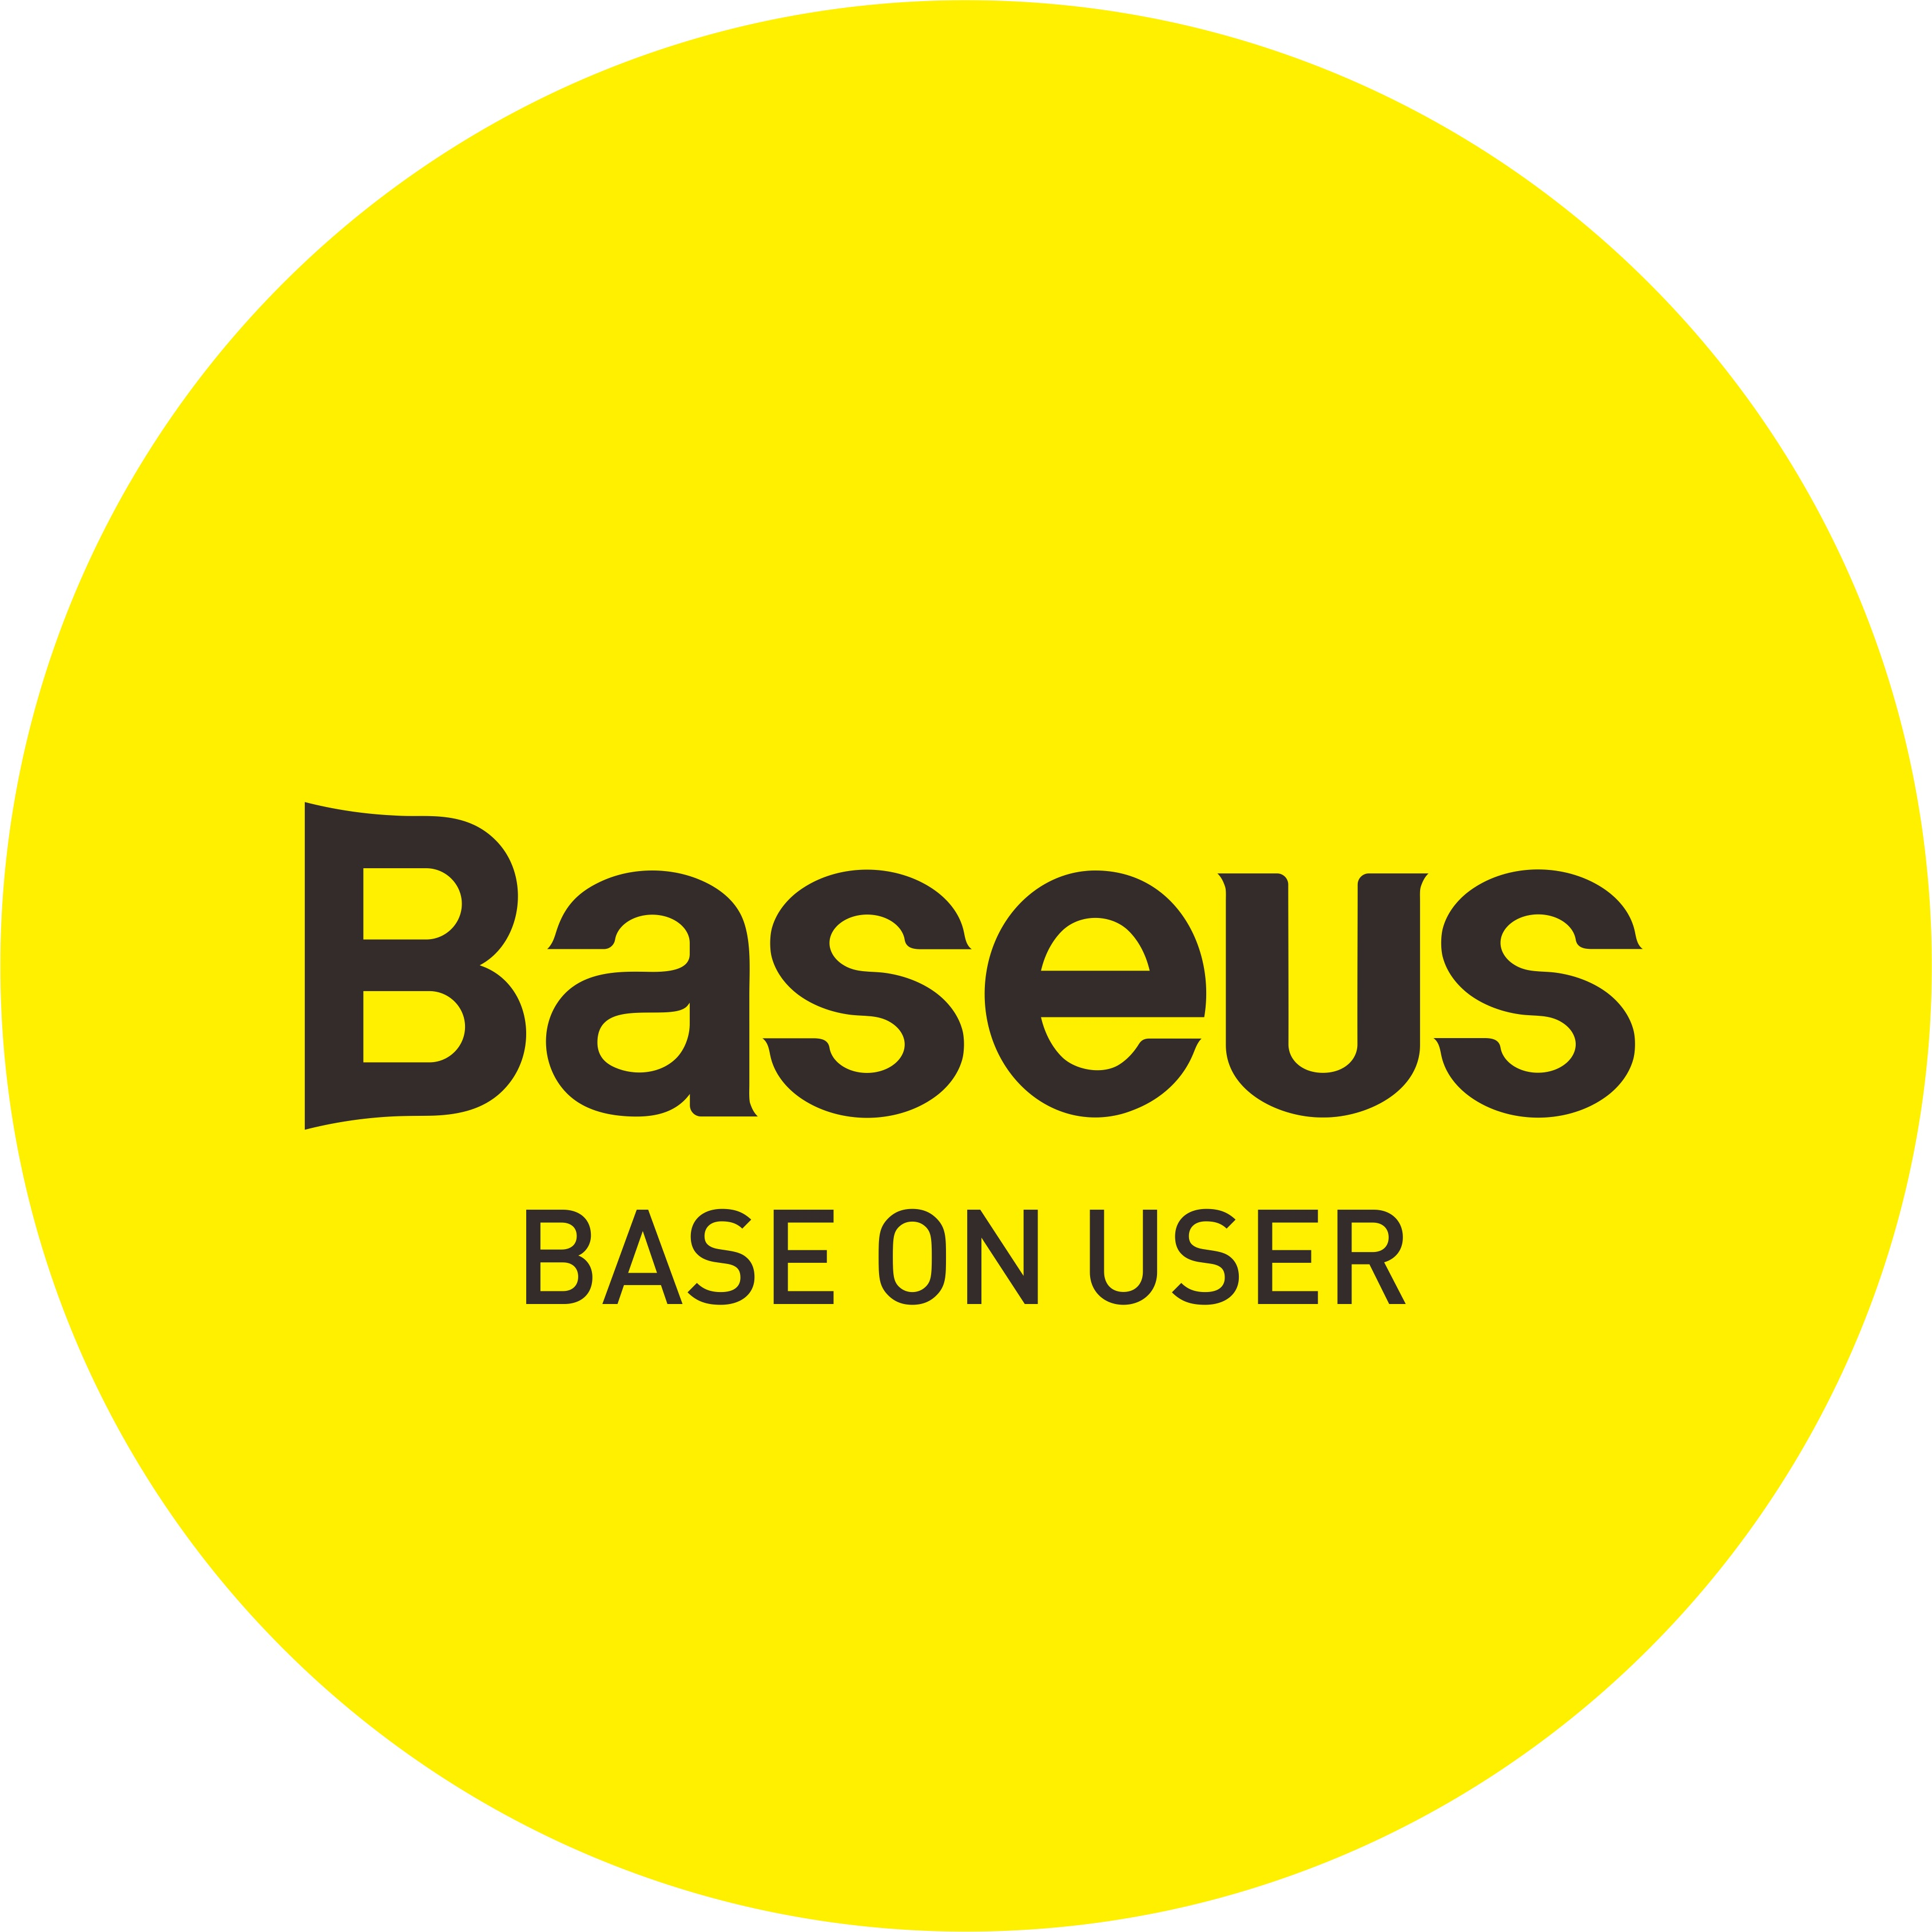 Up to 71% Off Baseus Tech Products for AliExpress Brand Day Starting on August 10th